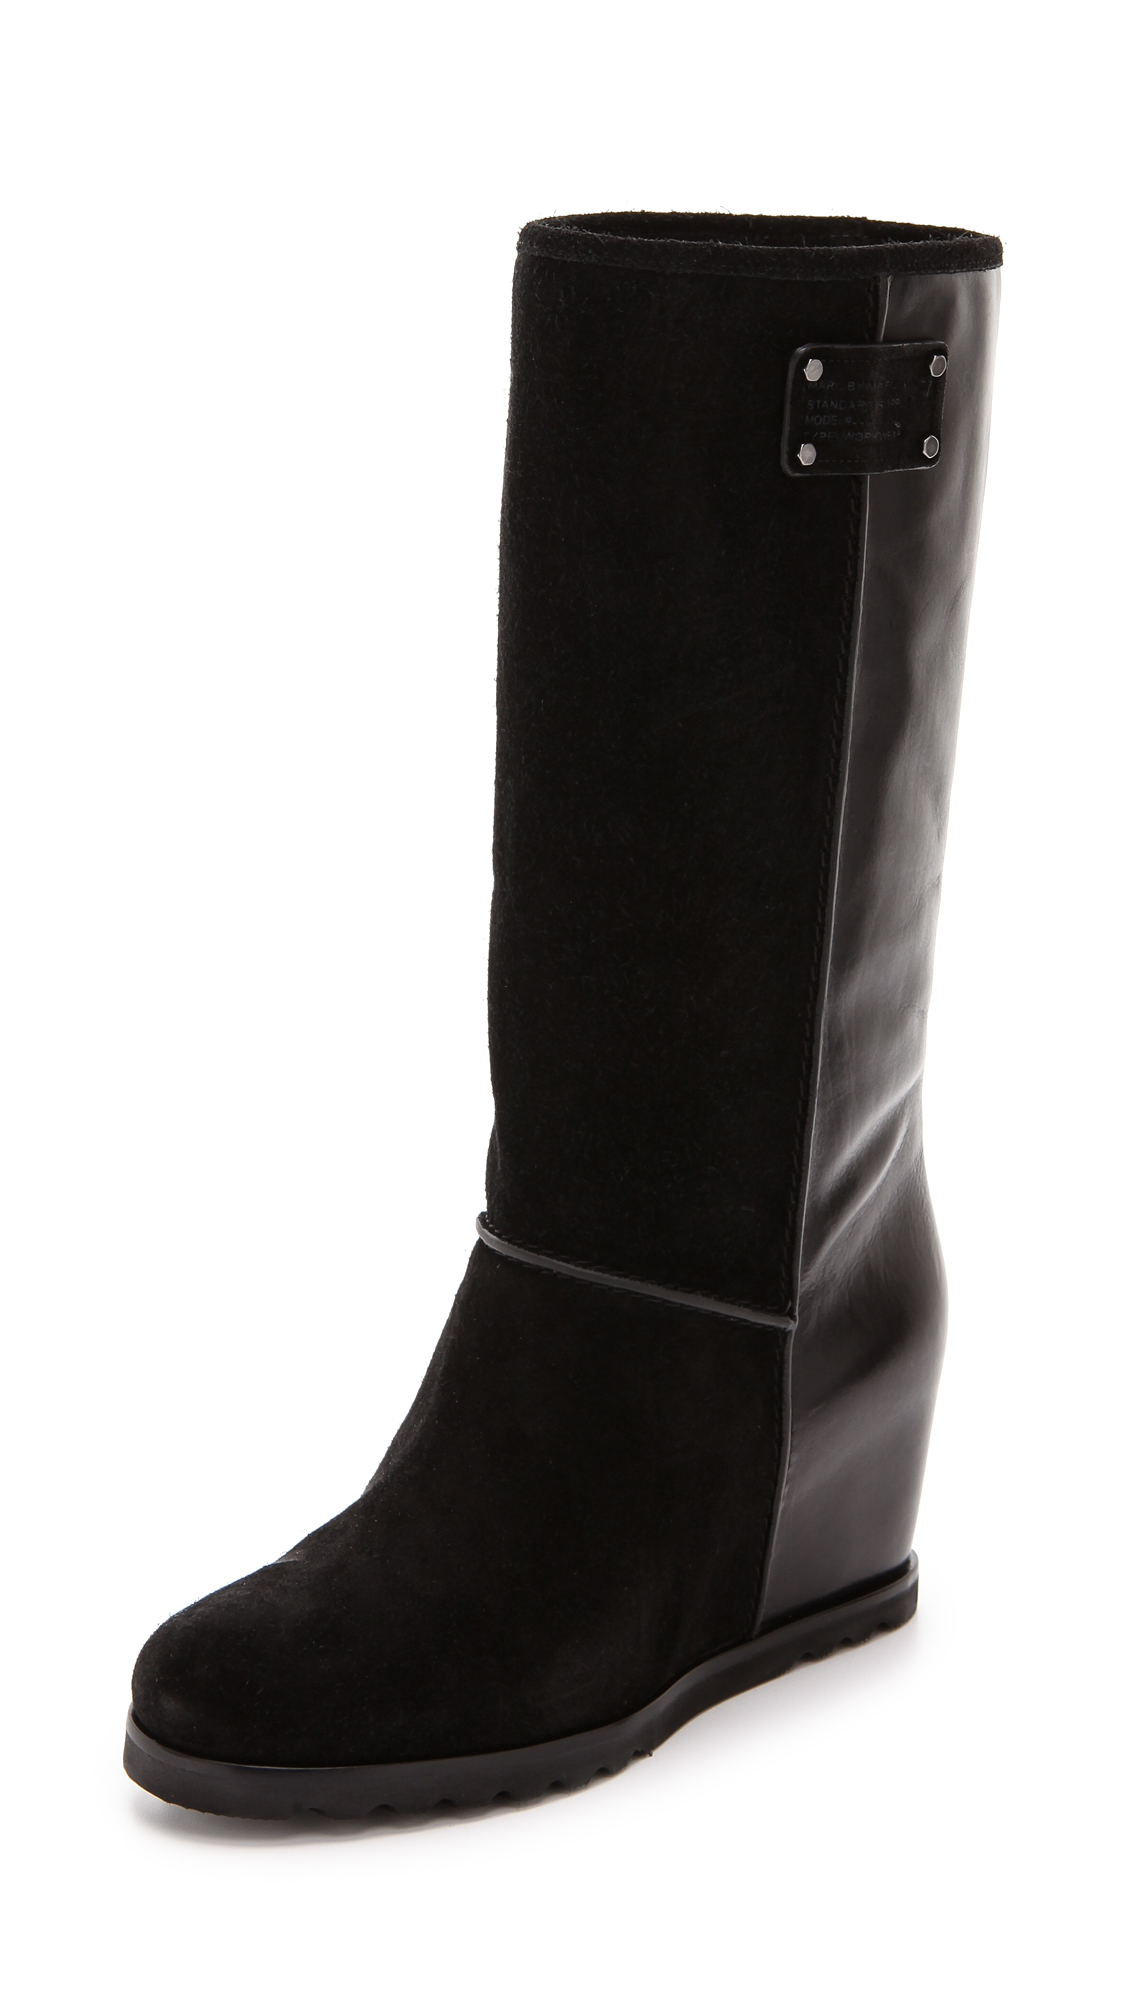 Marc By Marc Jacobs Leather Winter Warming Tall Wedge Boots - Black